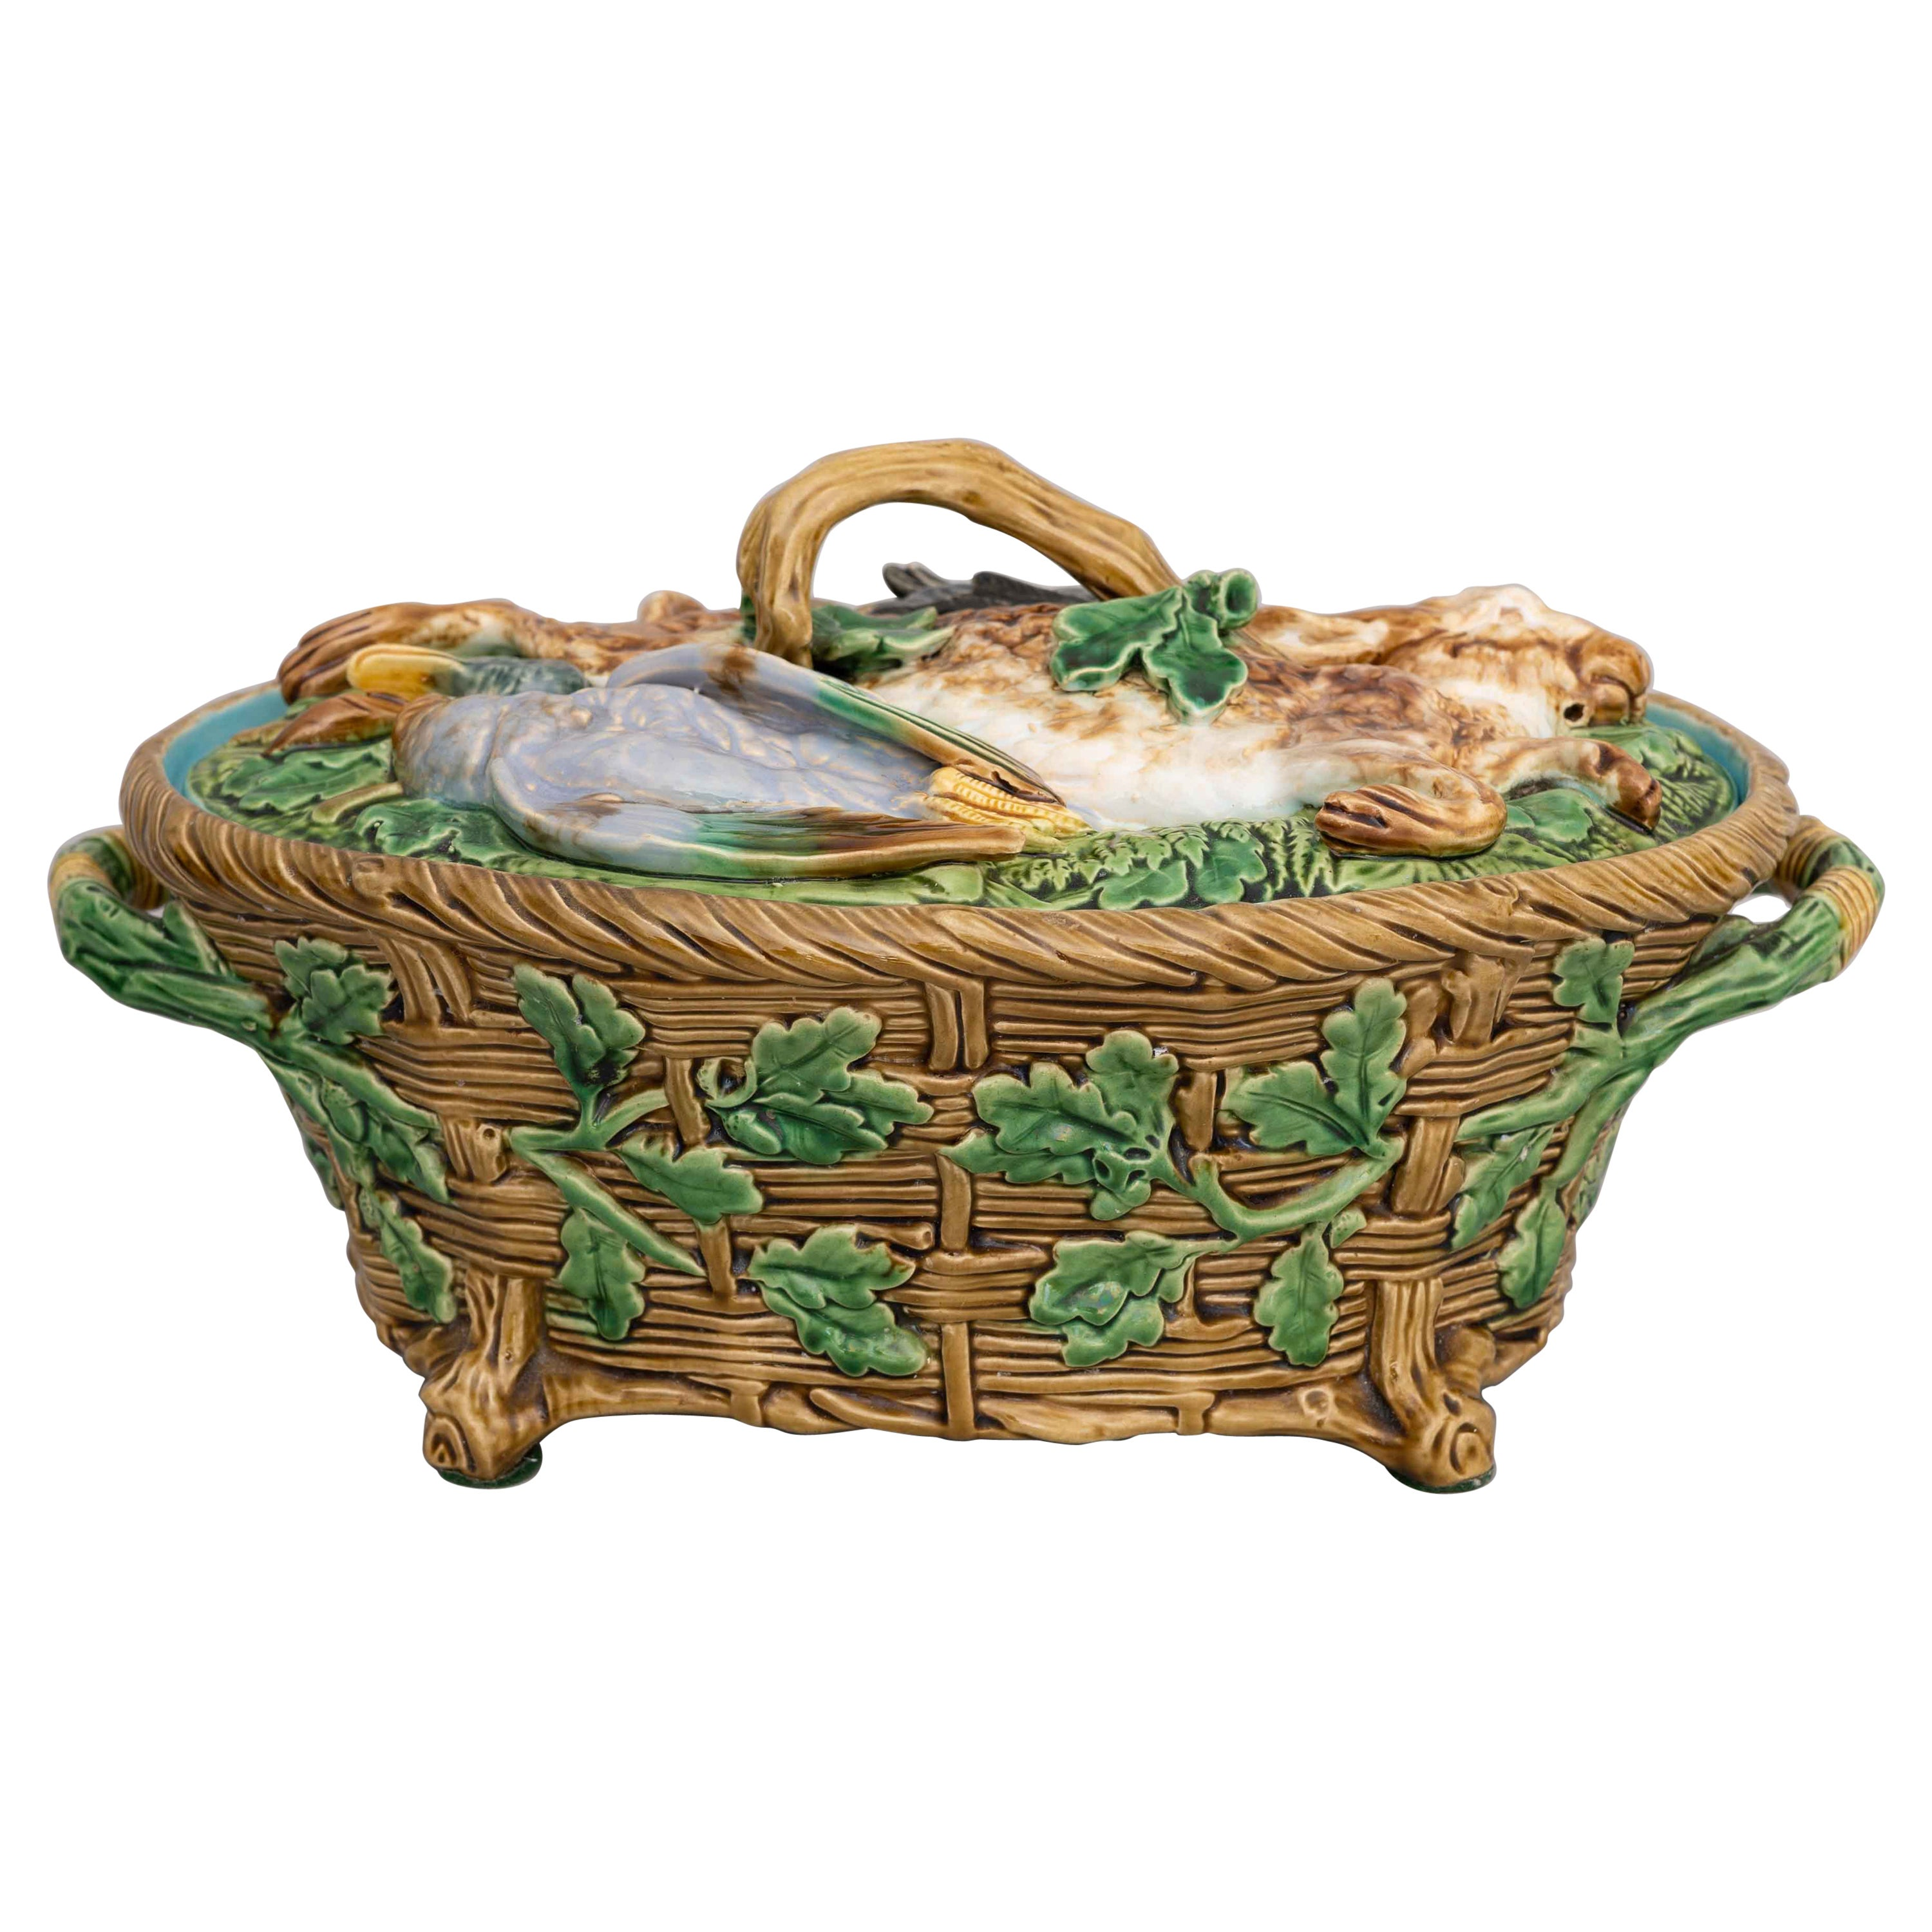 English Victorian Majolica Game Pie Dish Made by Minton & Co.